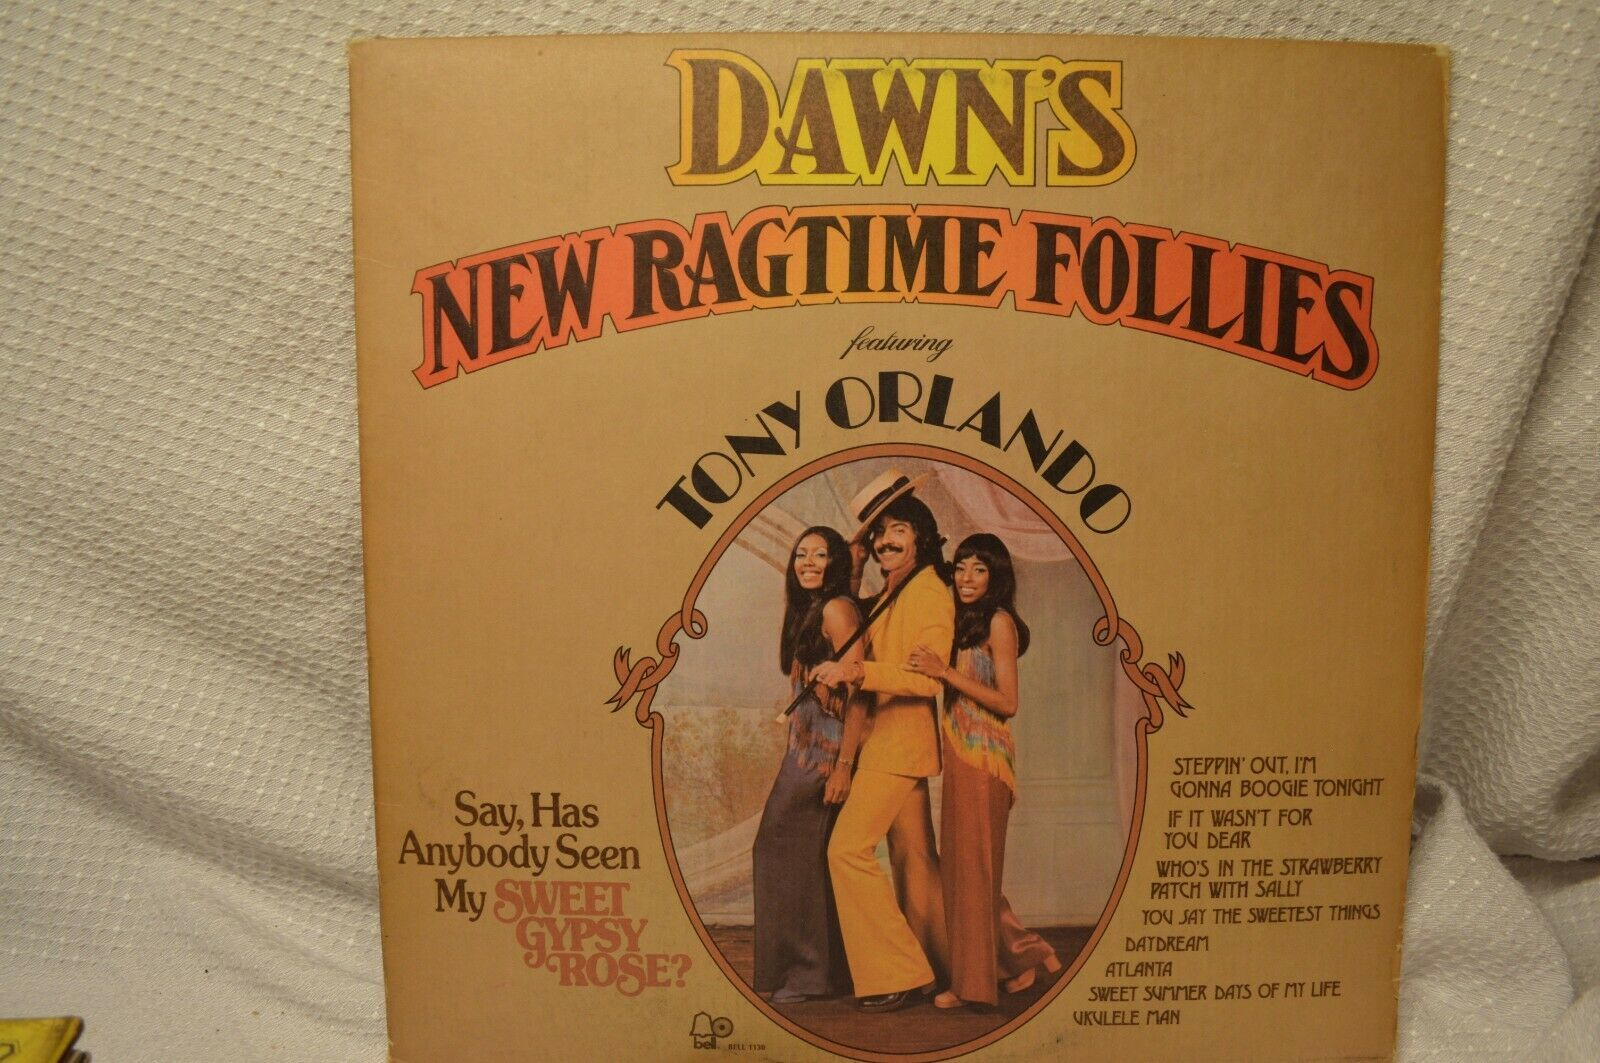 1973 LP 33 RECORD Dawn's New Ragtime Follies featuring Tony Orlando Jazz Rock